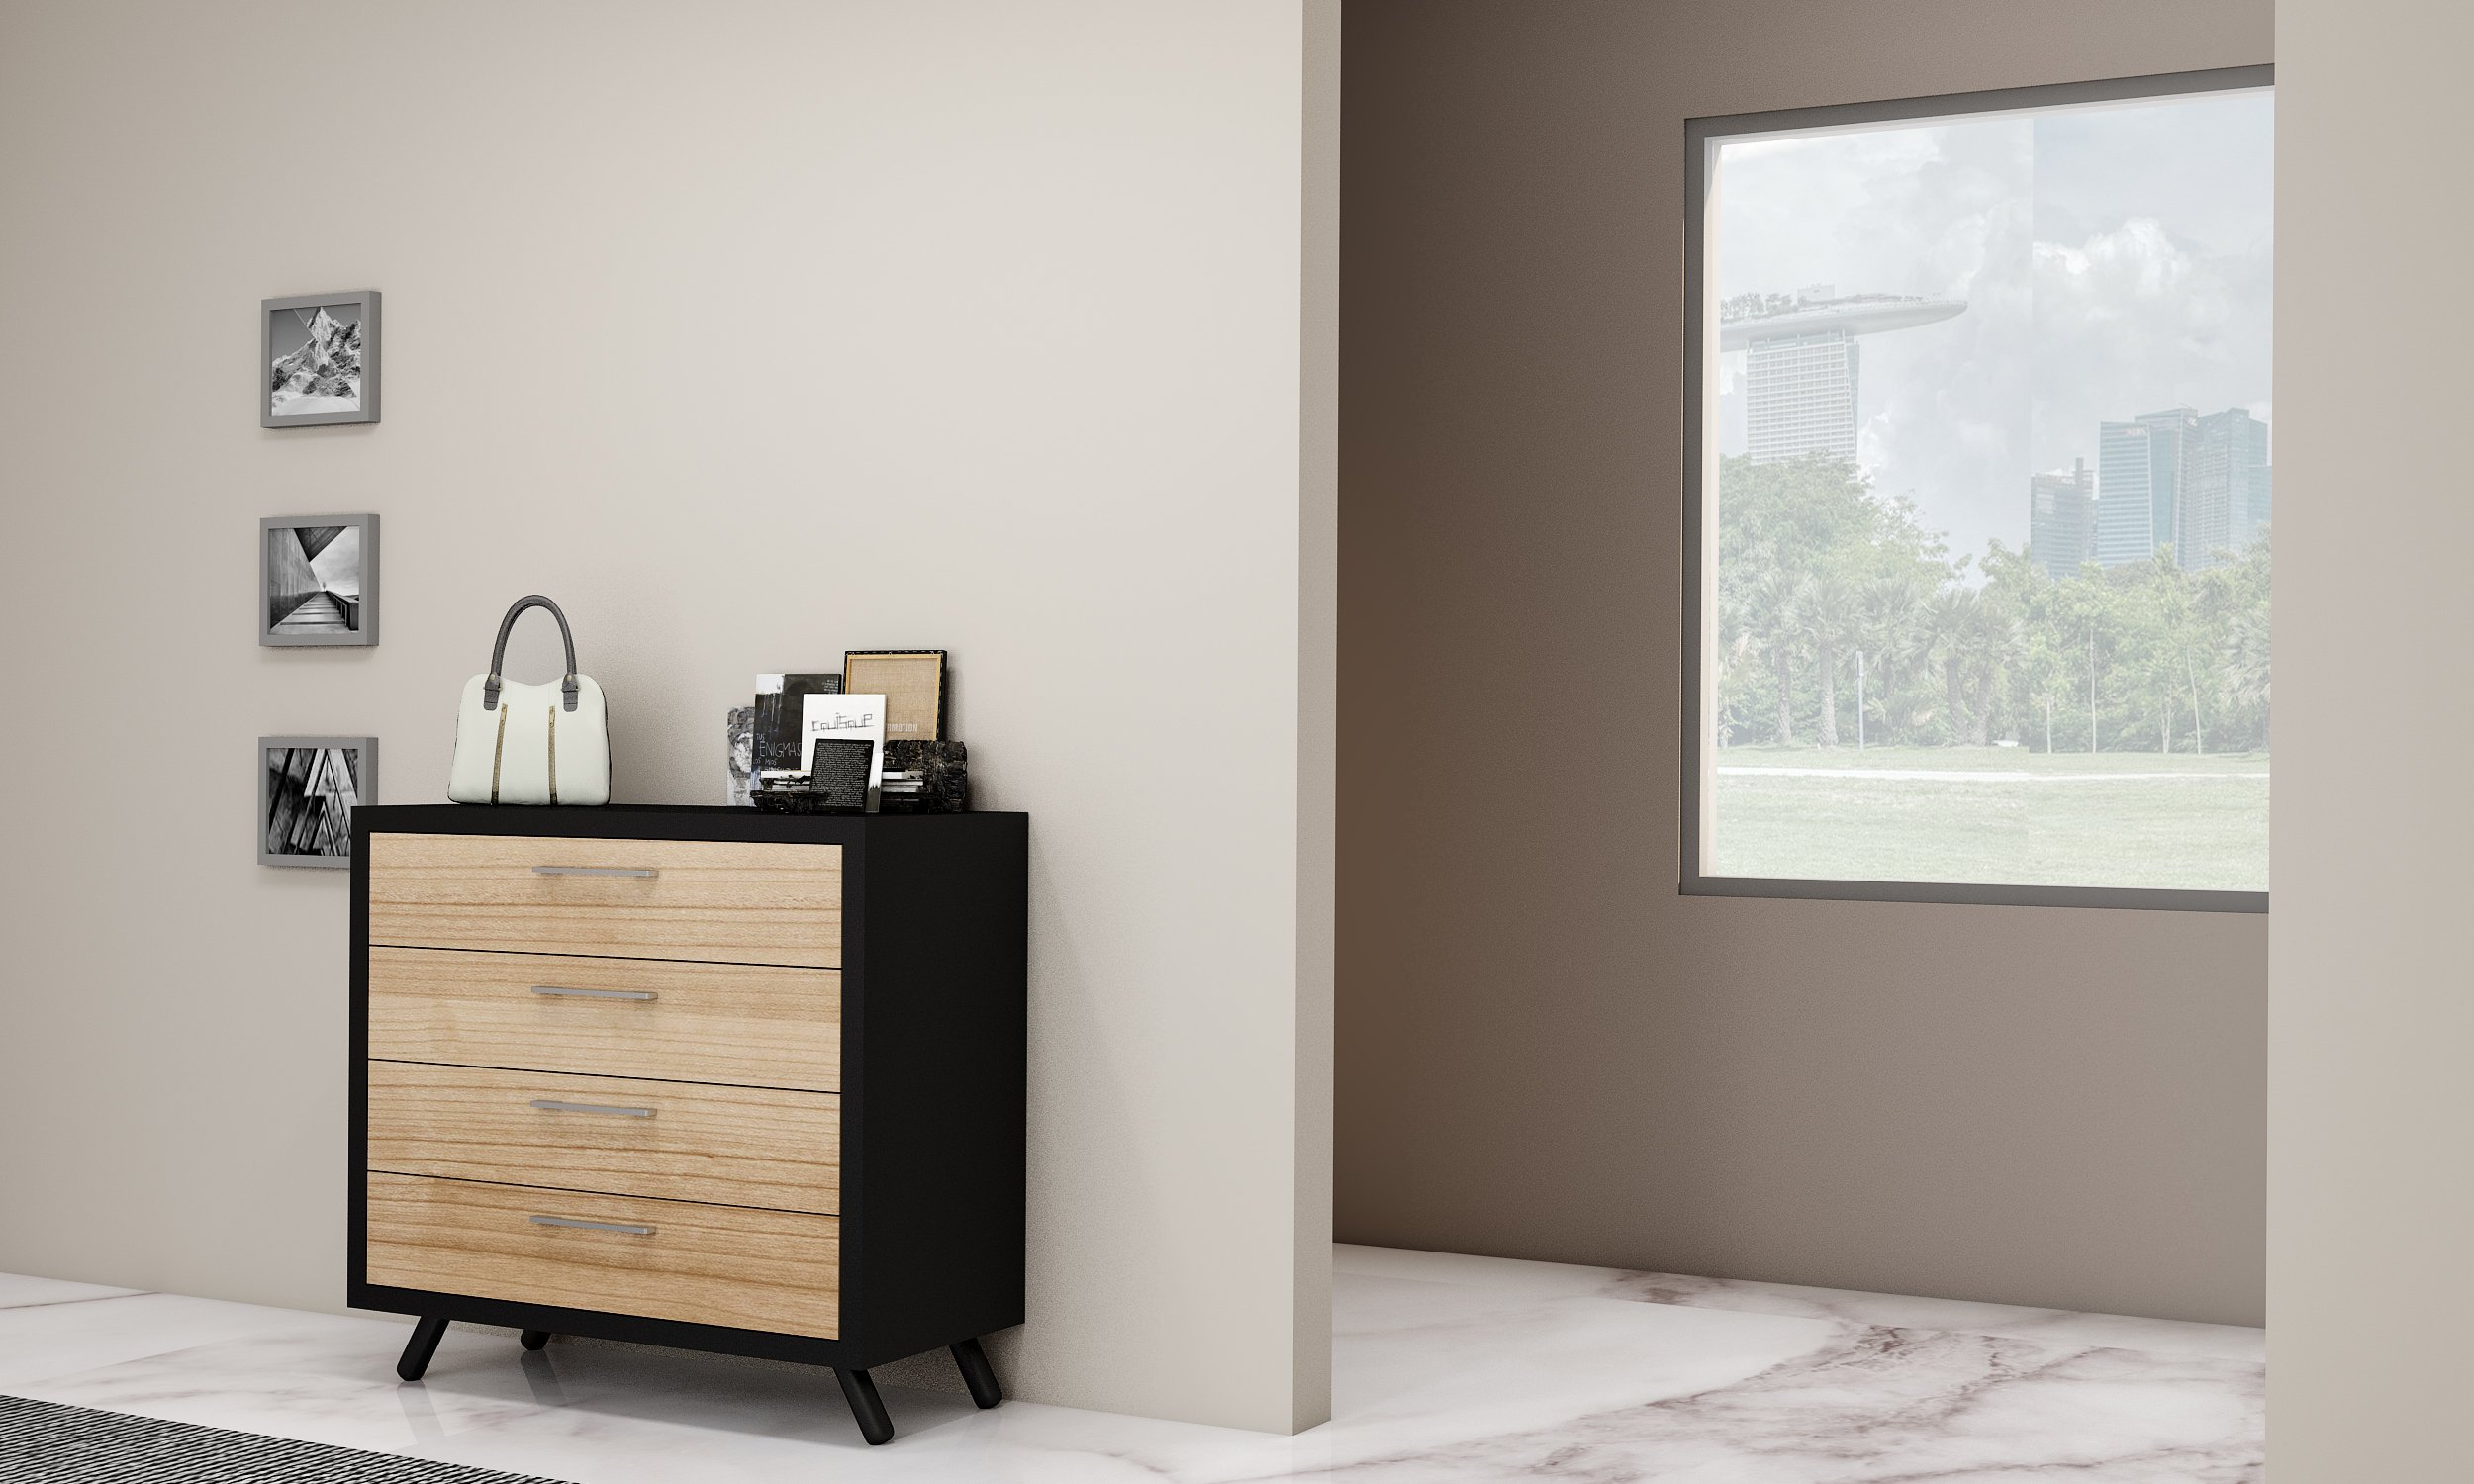 Chest Drawer cabinet with black frame and woodgrain front